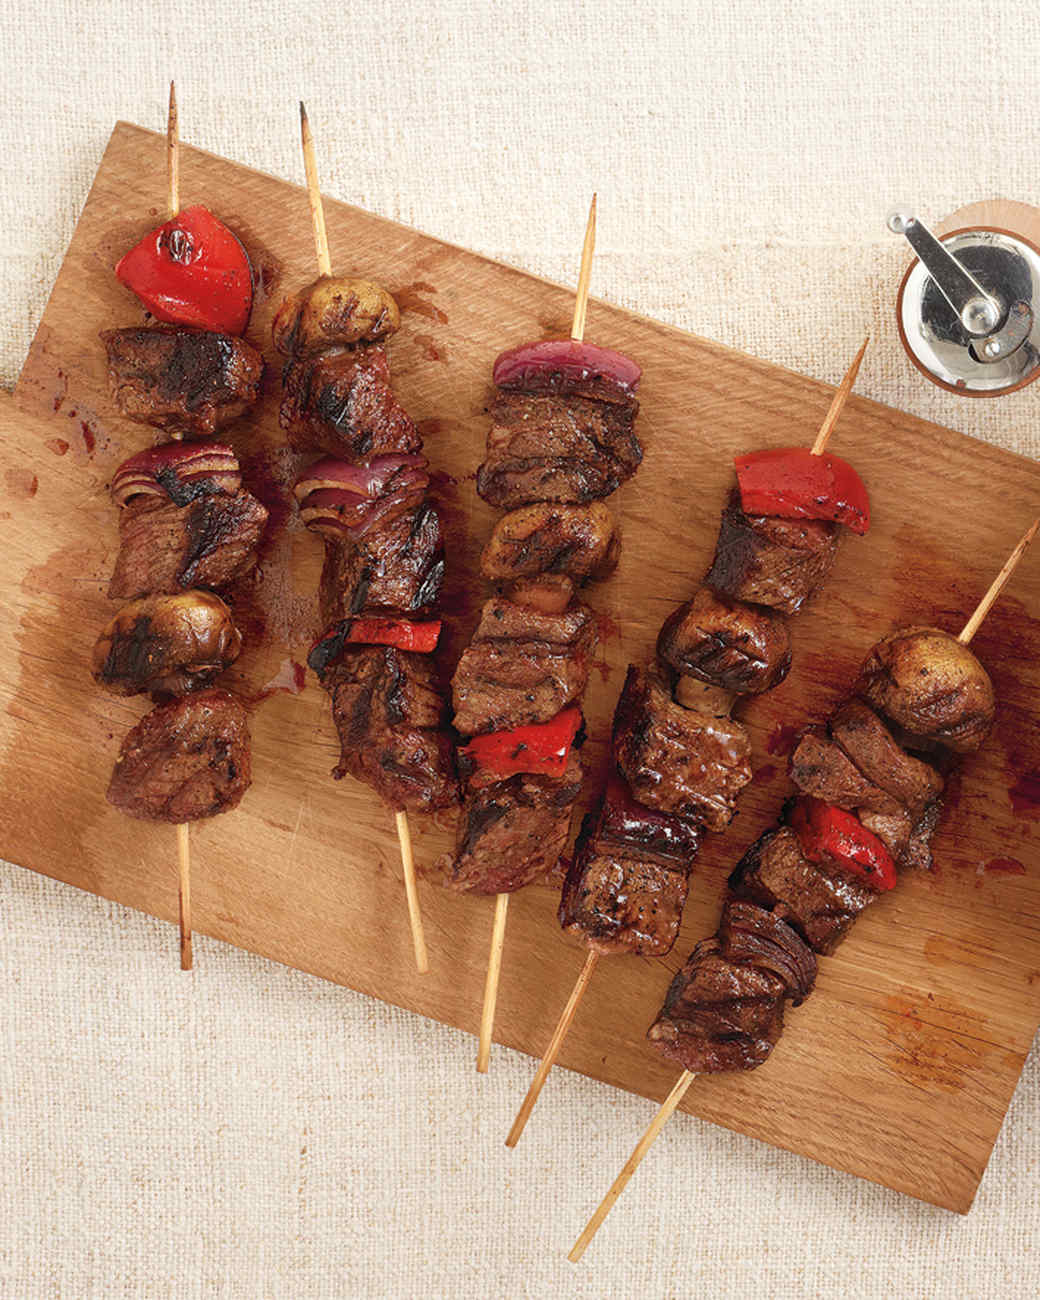 steak-kebabs-0911med107344.jpg